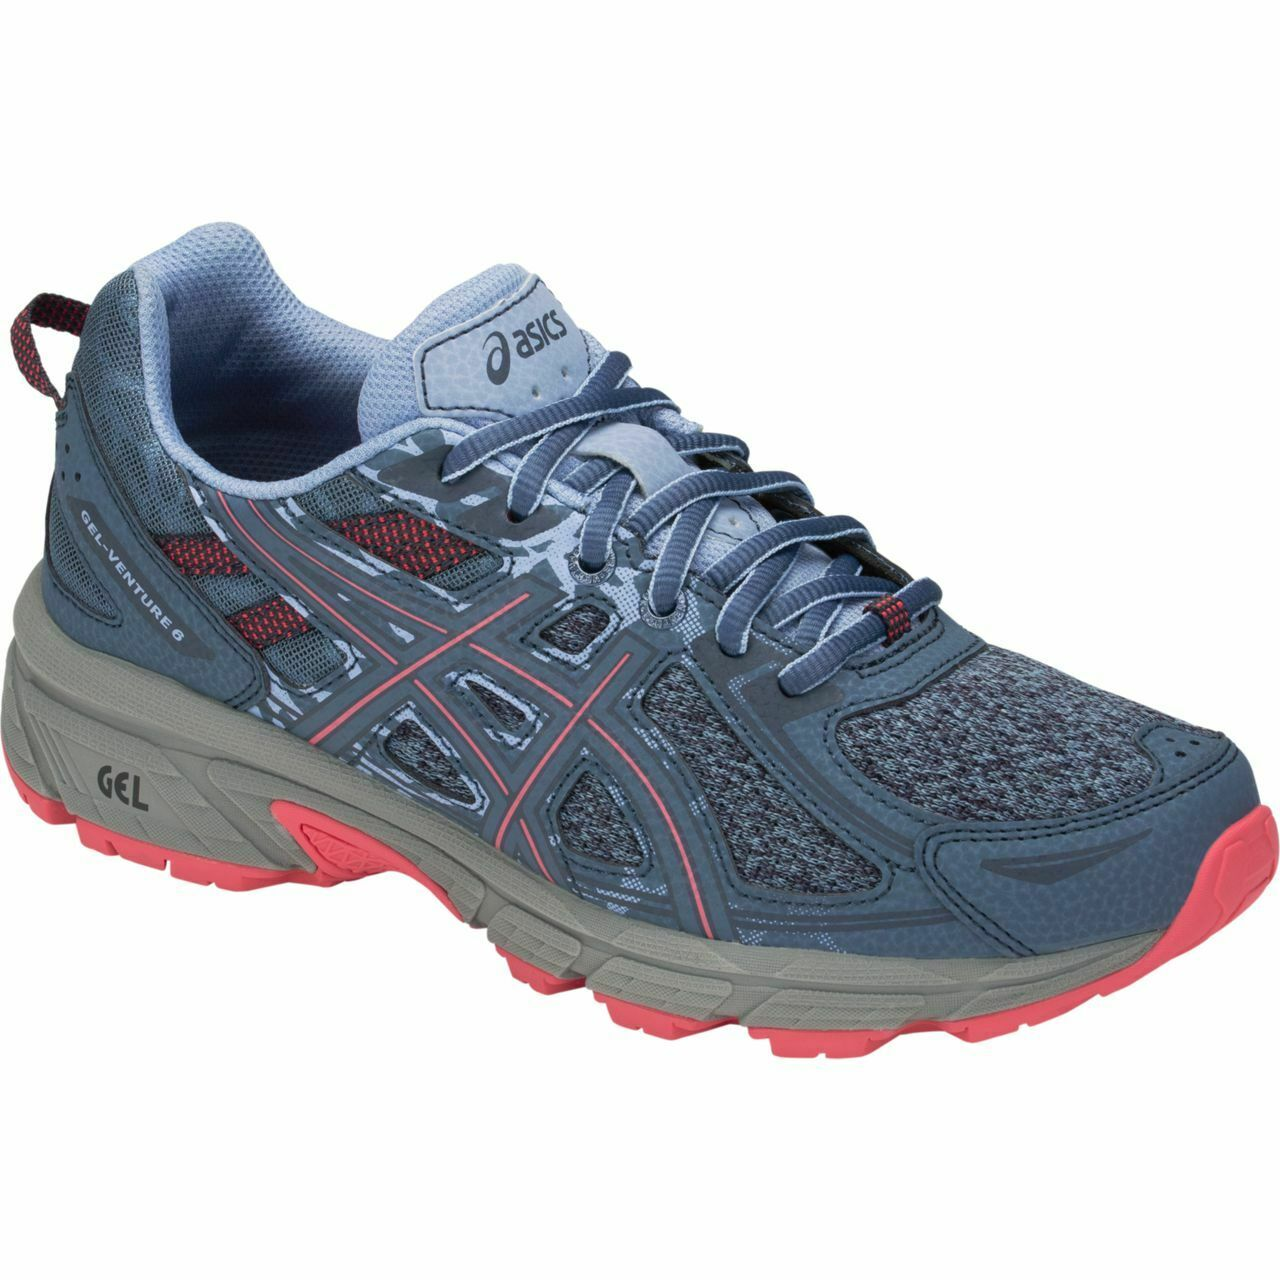 LATEST    Asics Gel Venture 6 Womens Trail Running shoes (B) (1012A504 400)